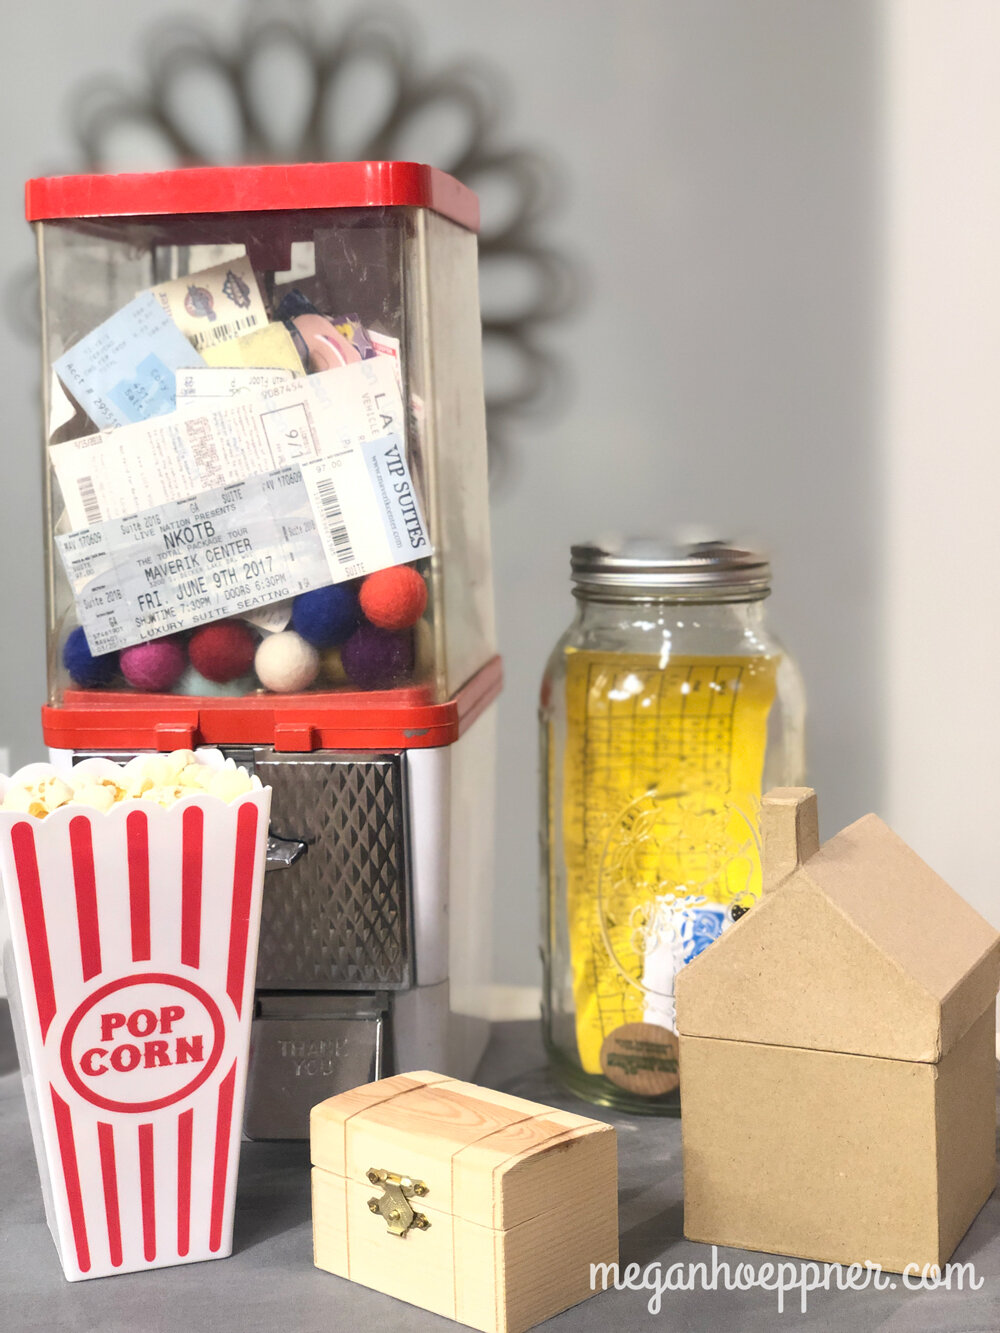 S5_MovieTickets_Nov19_containers.jpg